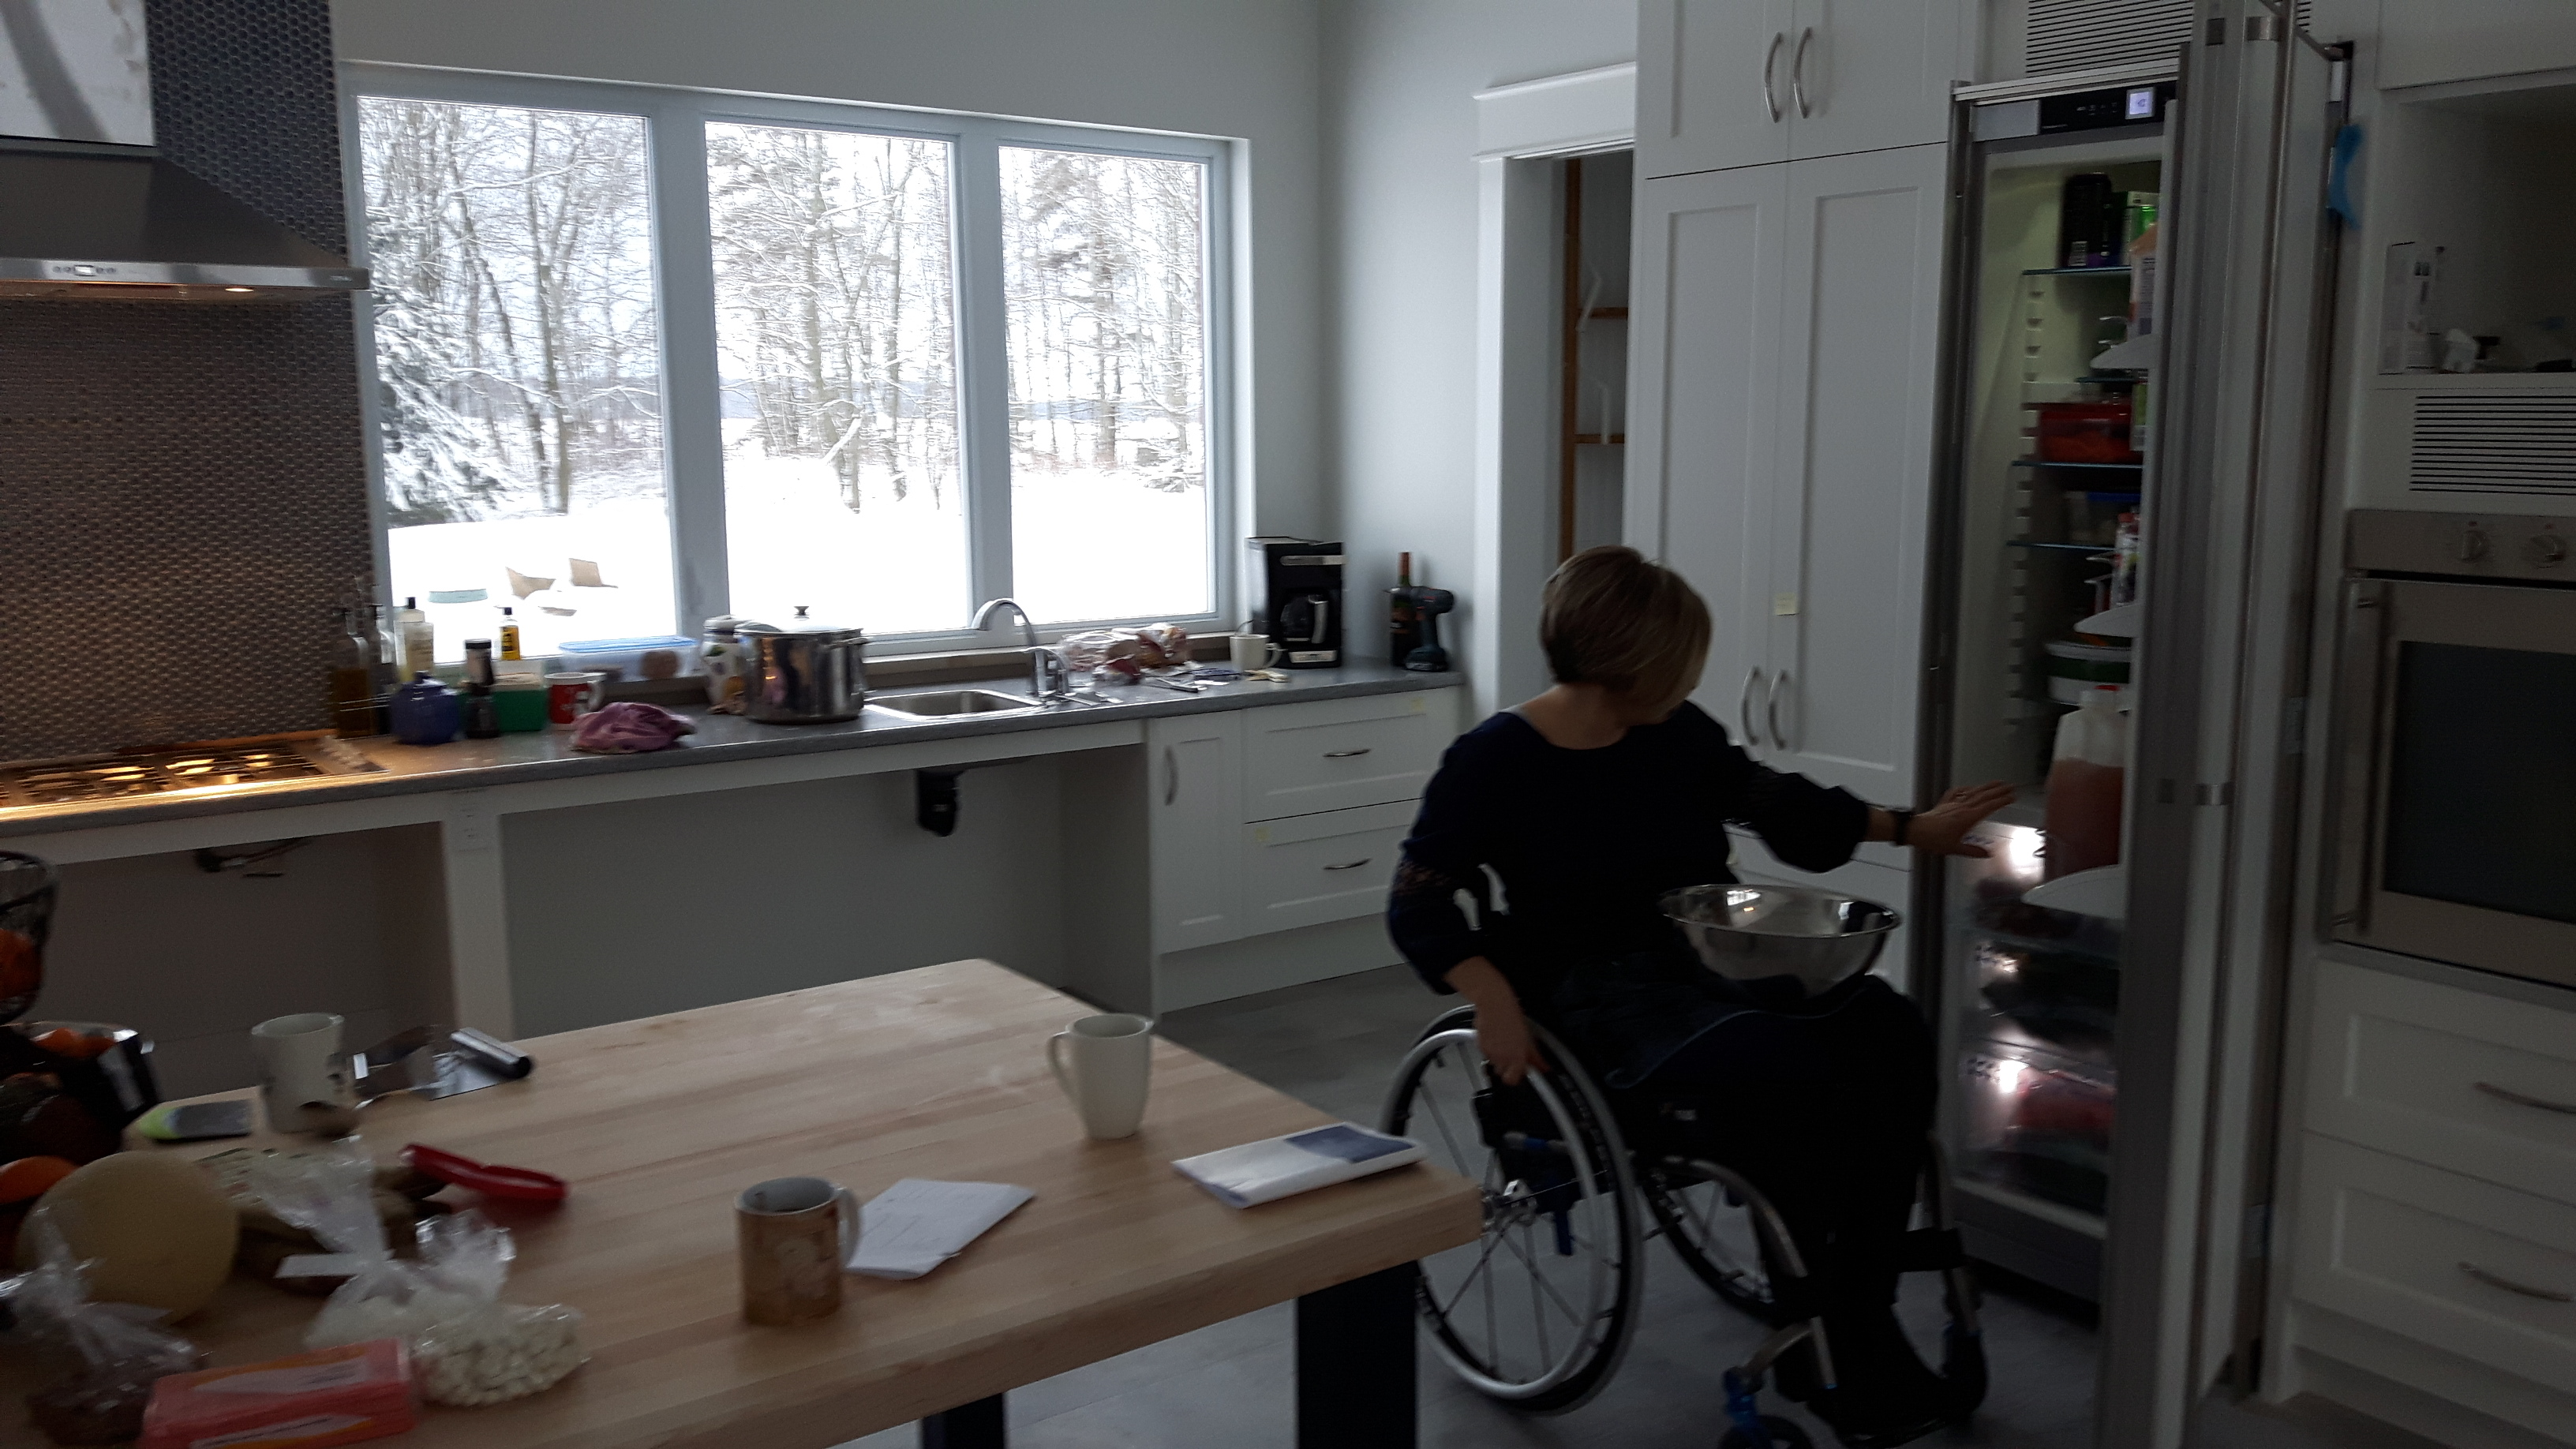 Julie in her fully accessible kitchen